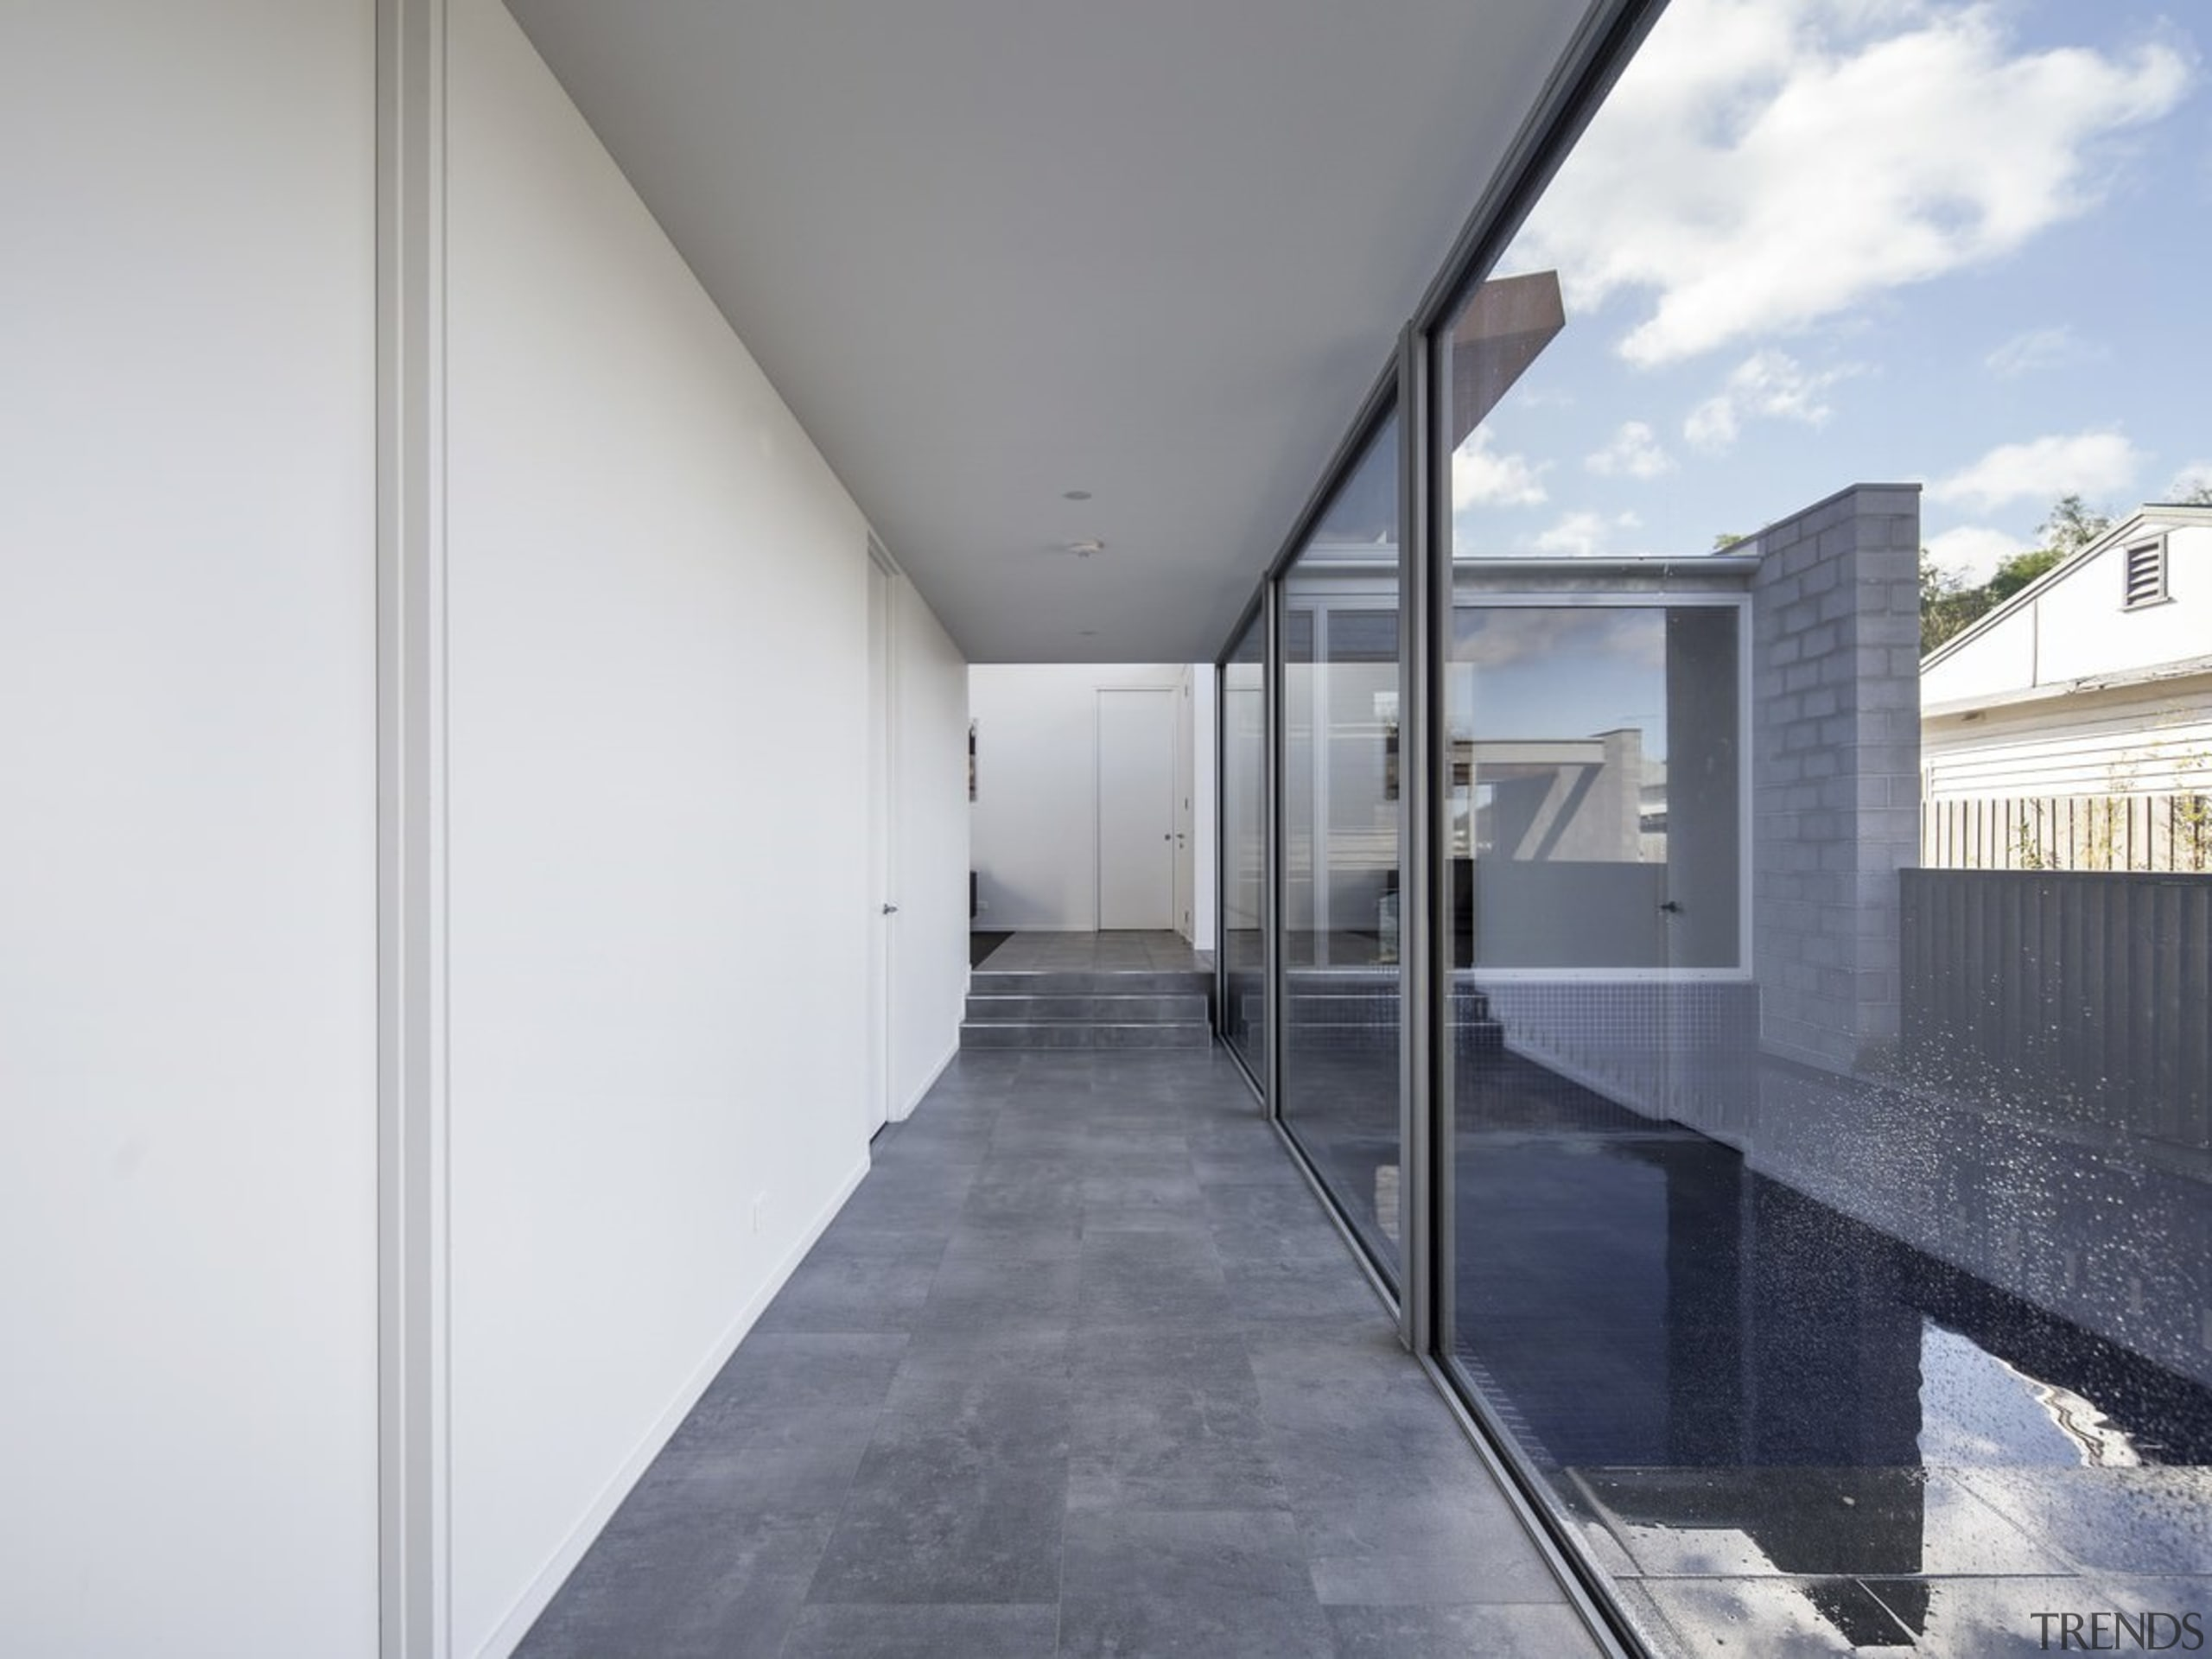 The hallway faces out to the swimming pool apartment, architecture, building, daylighting, facade, floor, glass, house, interior design, real estate, white, gray